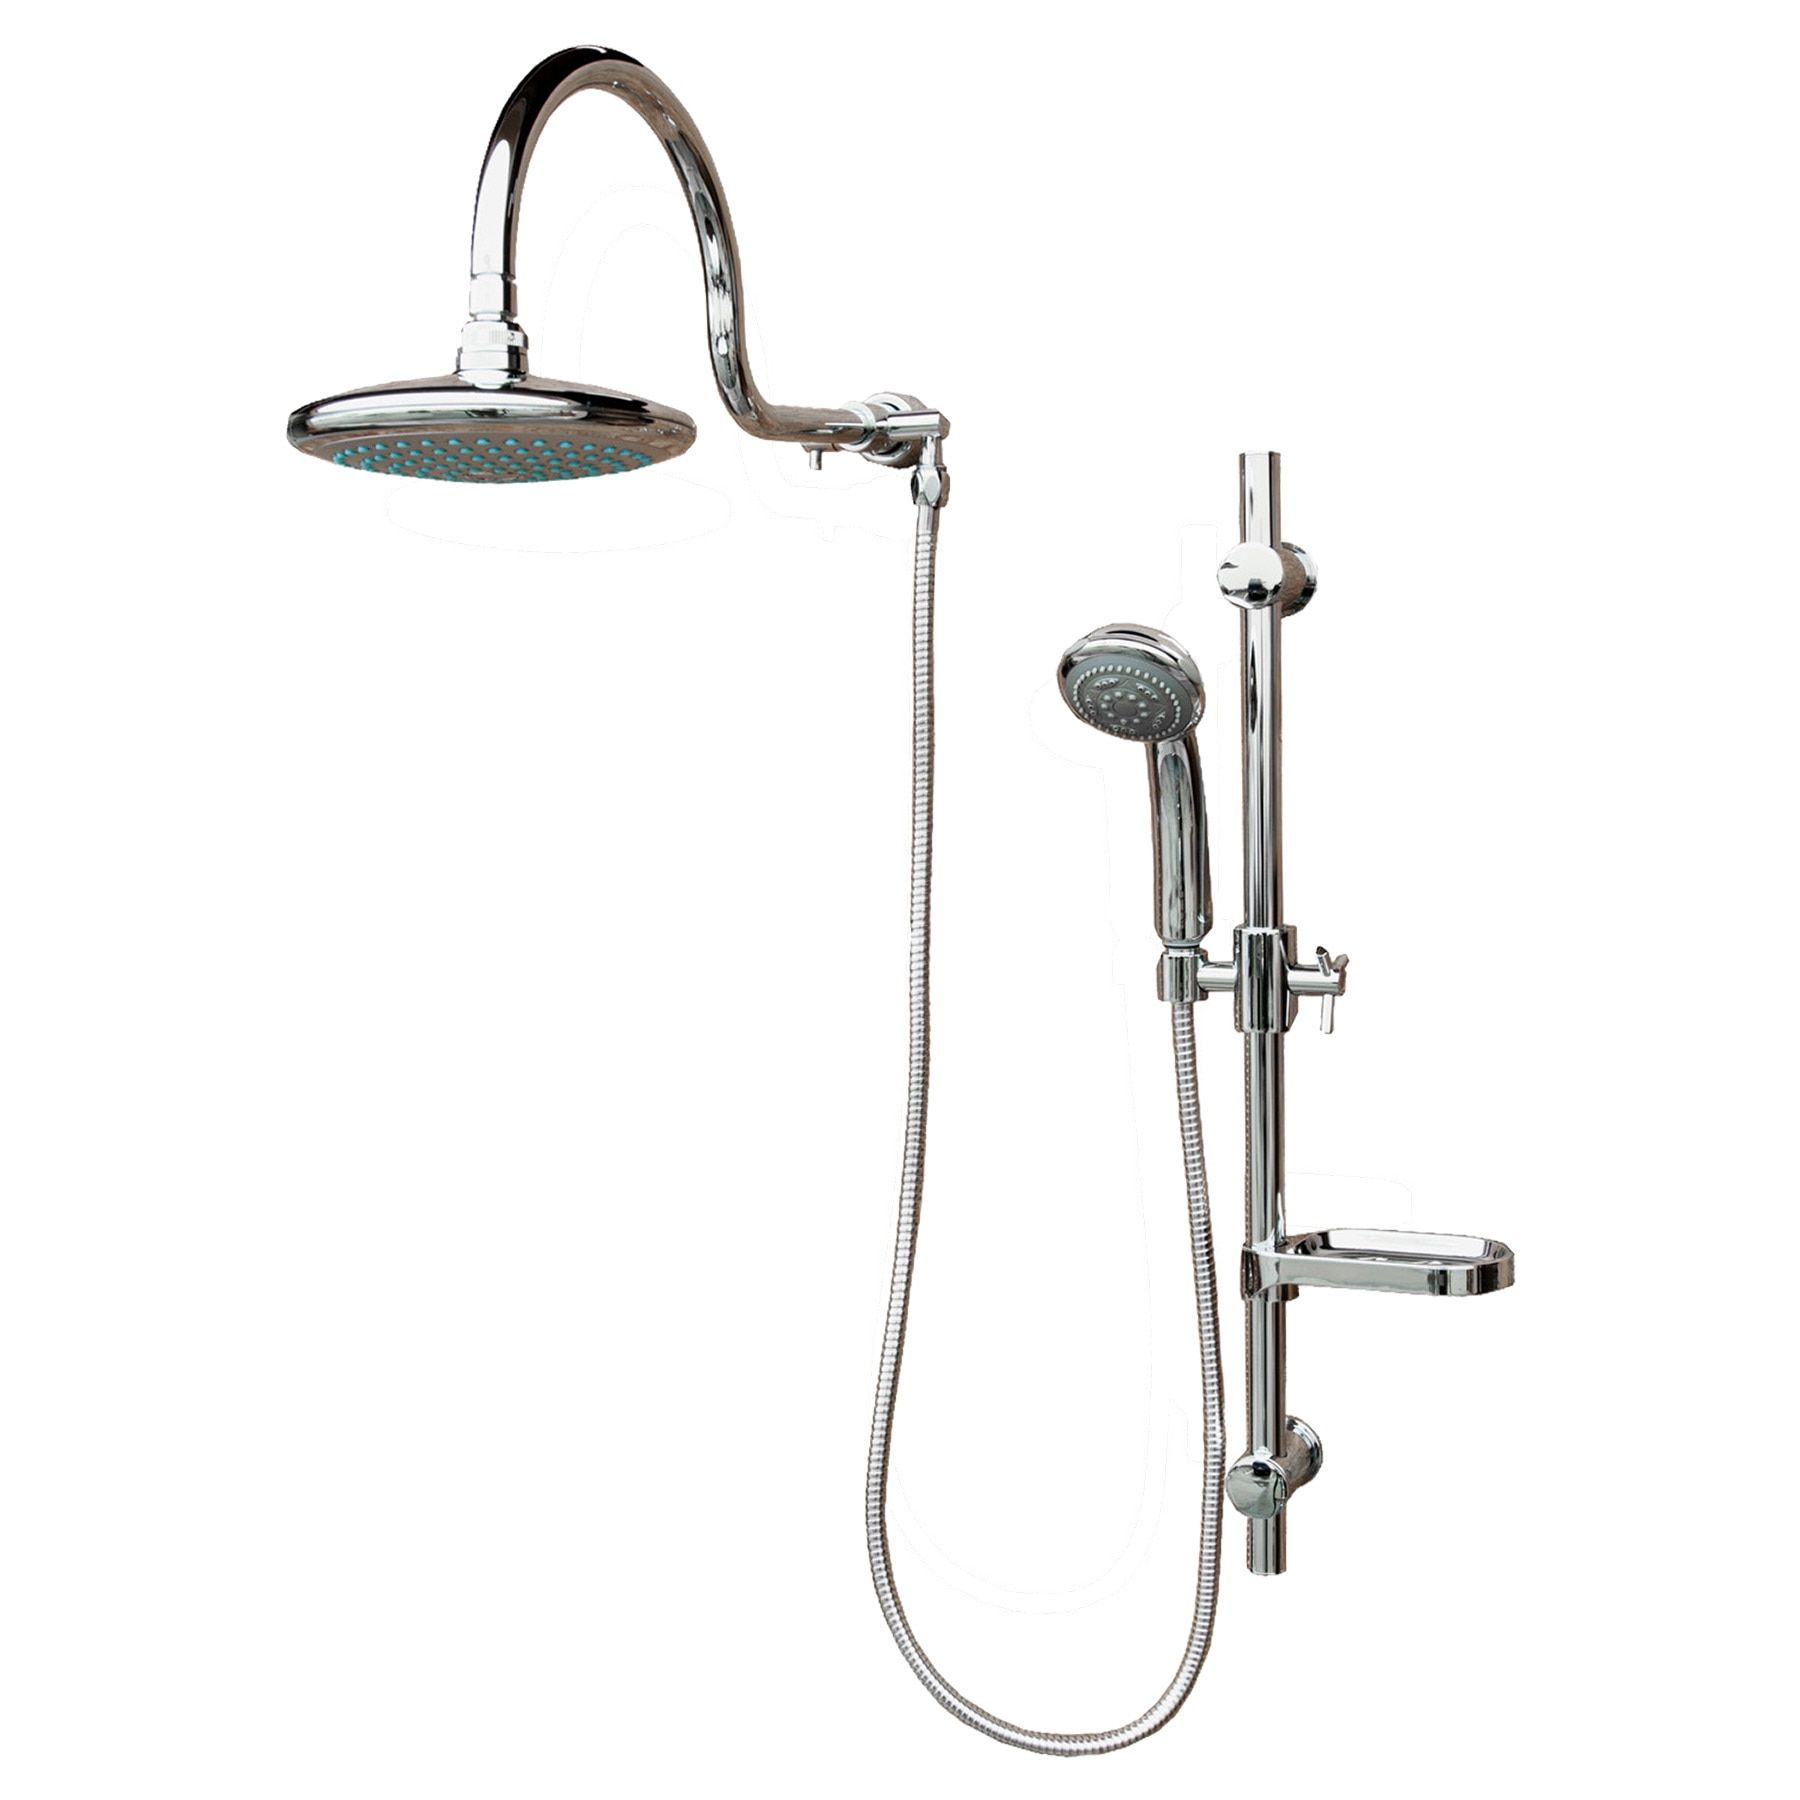 Rain Shower Head Shower Heads: Start looking forward to your daily ...